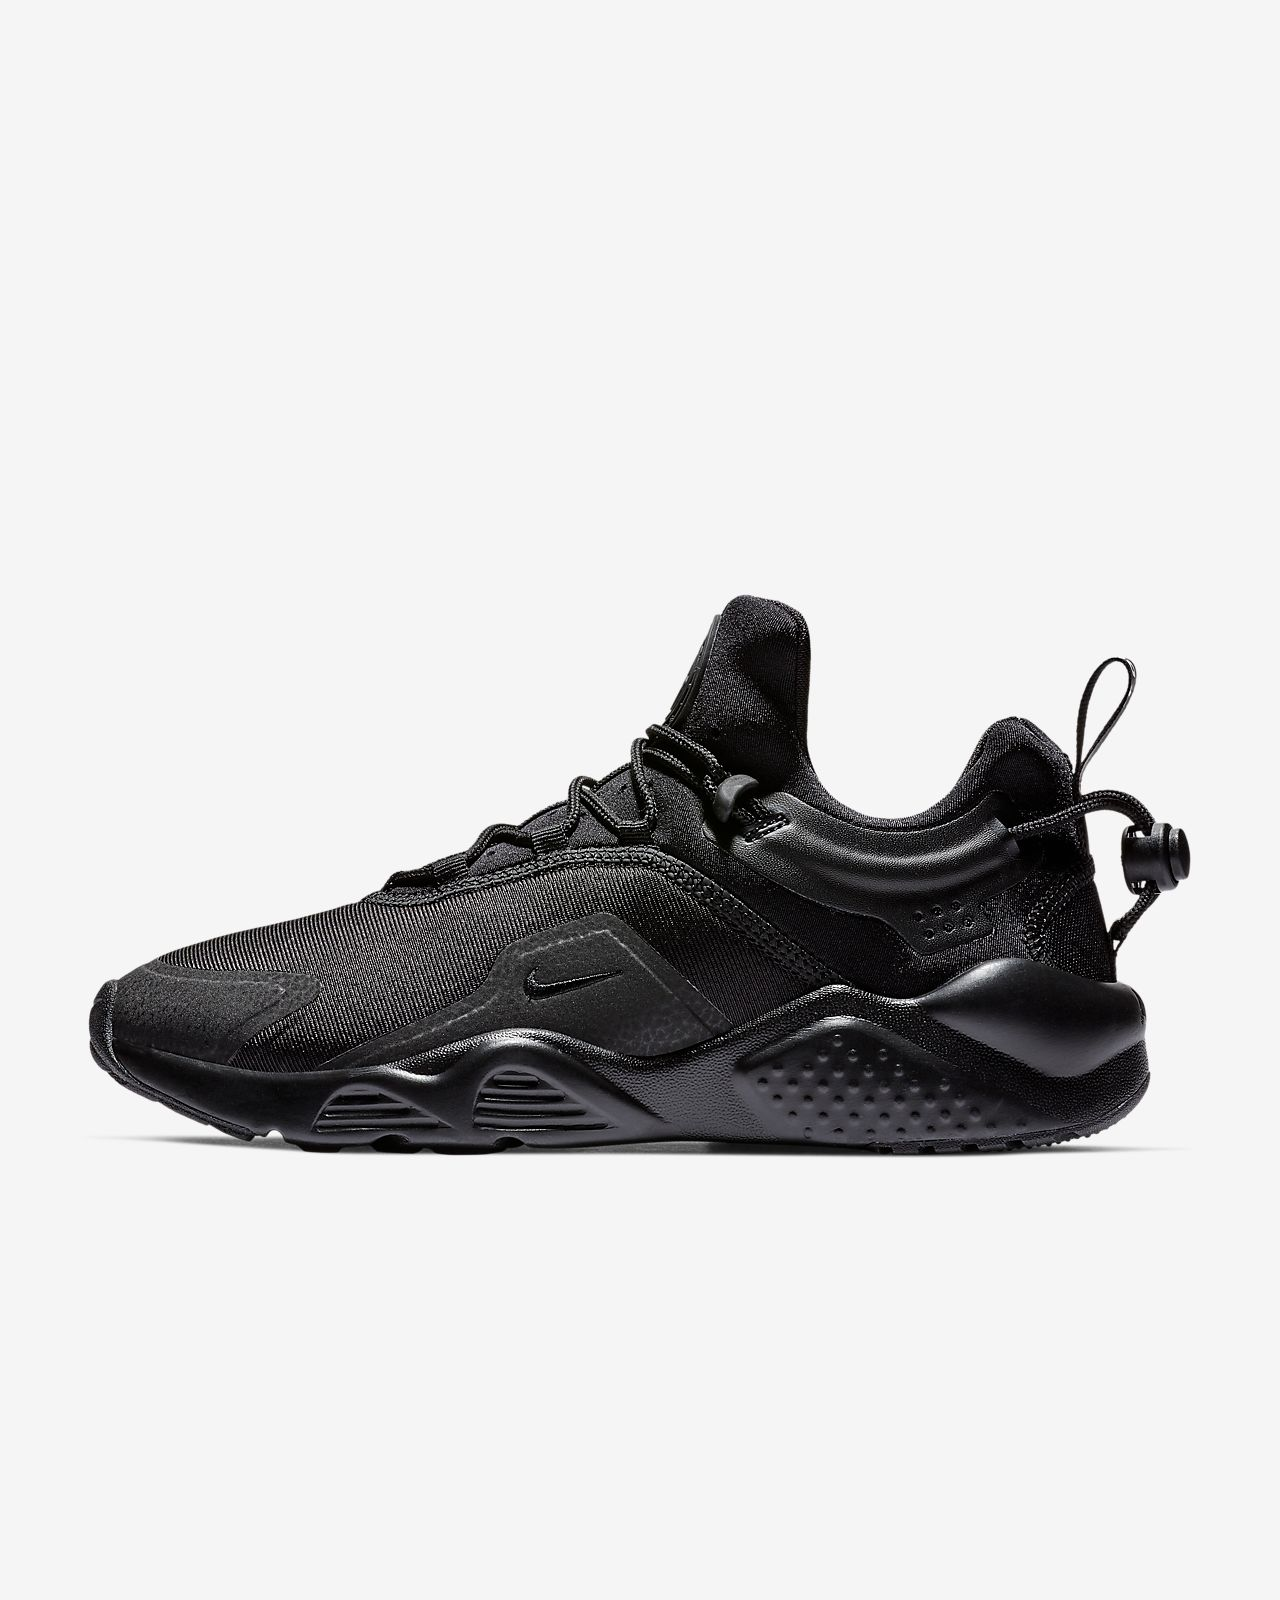 outlet store fc18a 4419c ... Nike Air Huarache City Move Women s Shoe